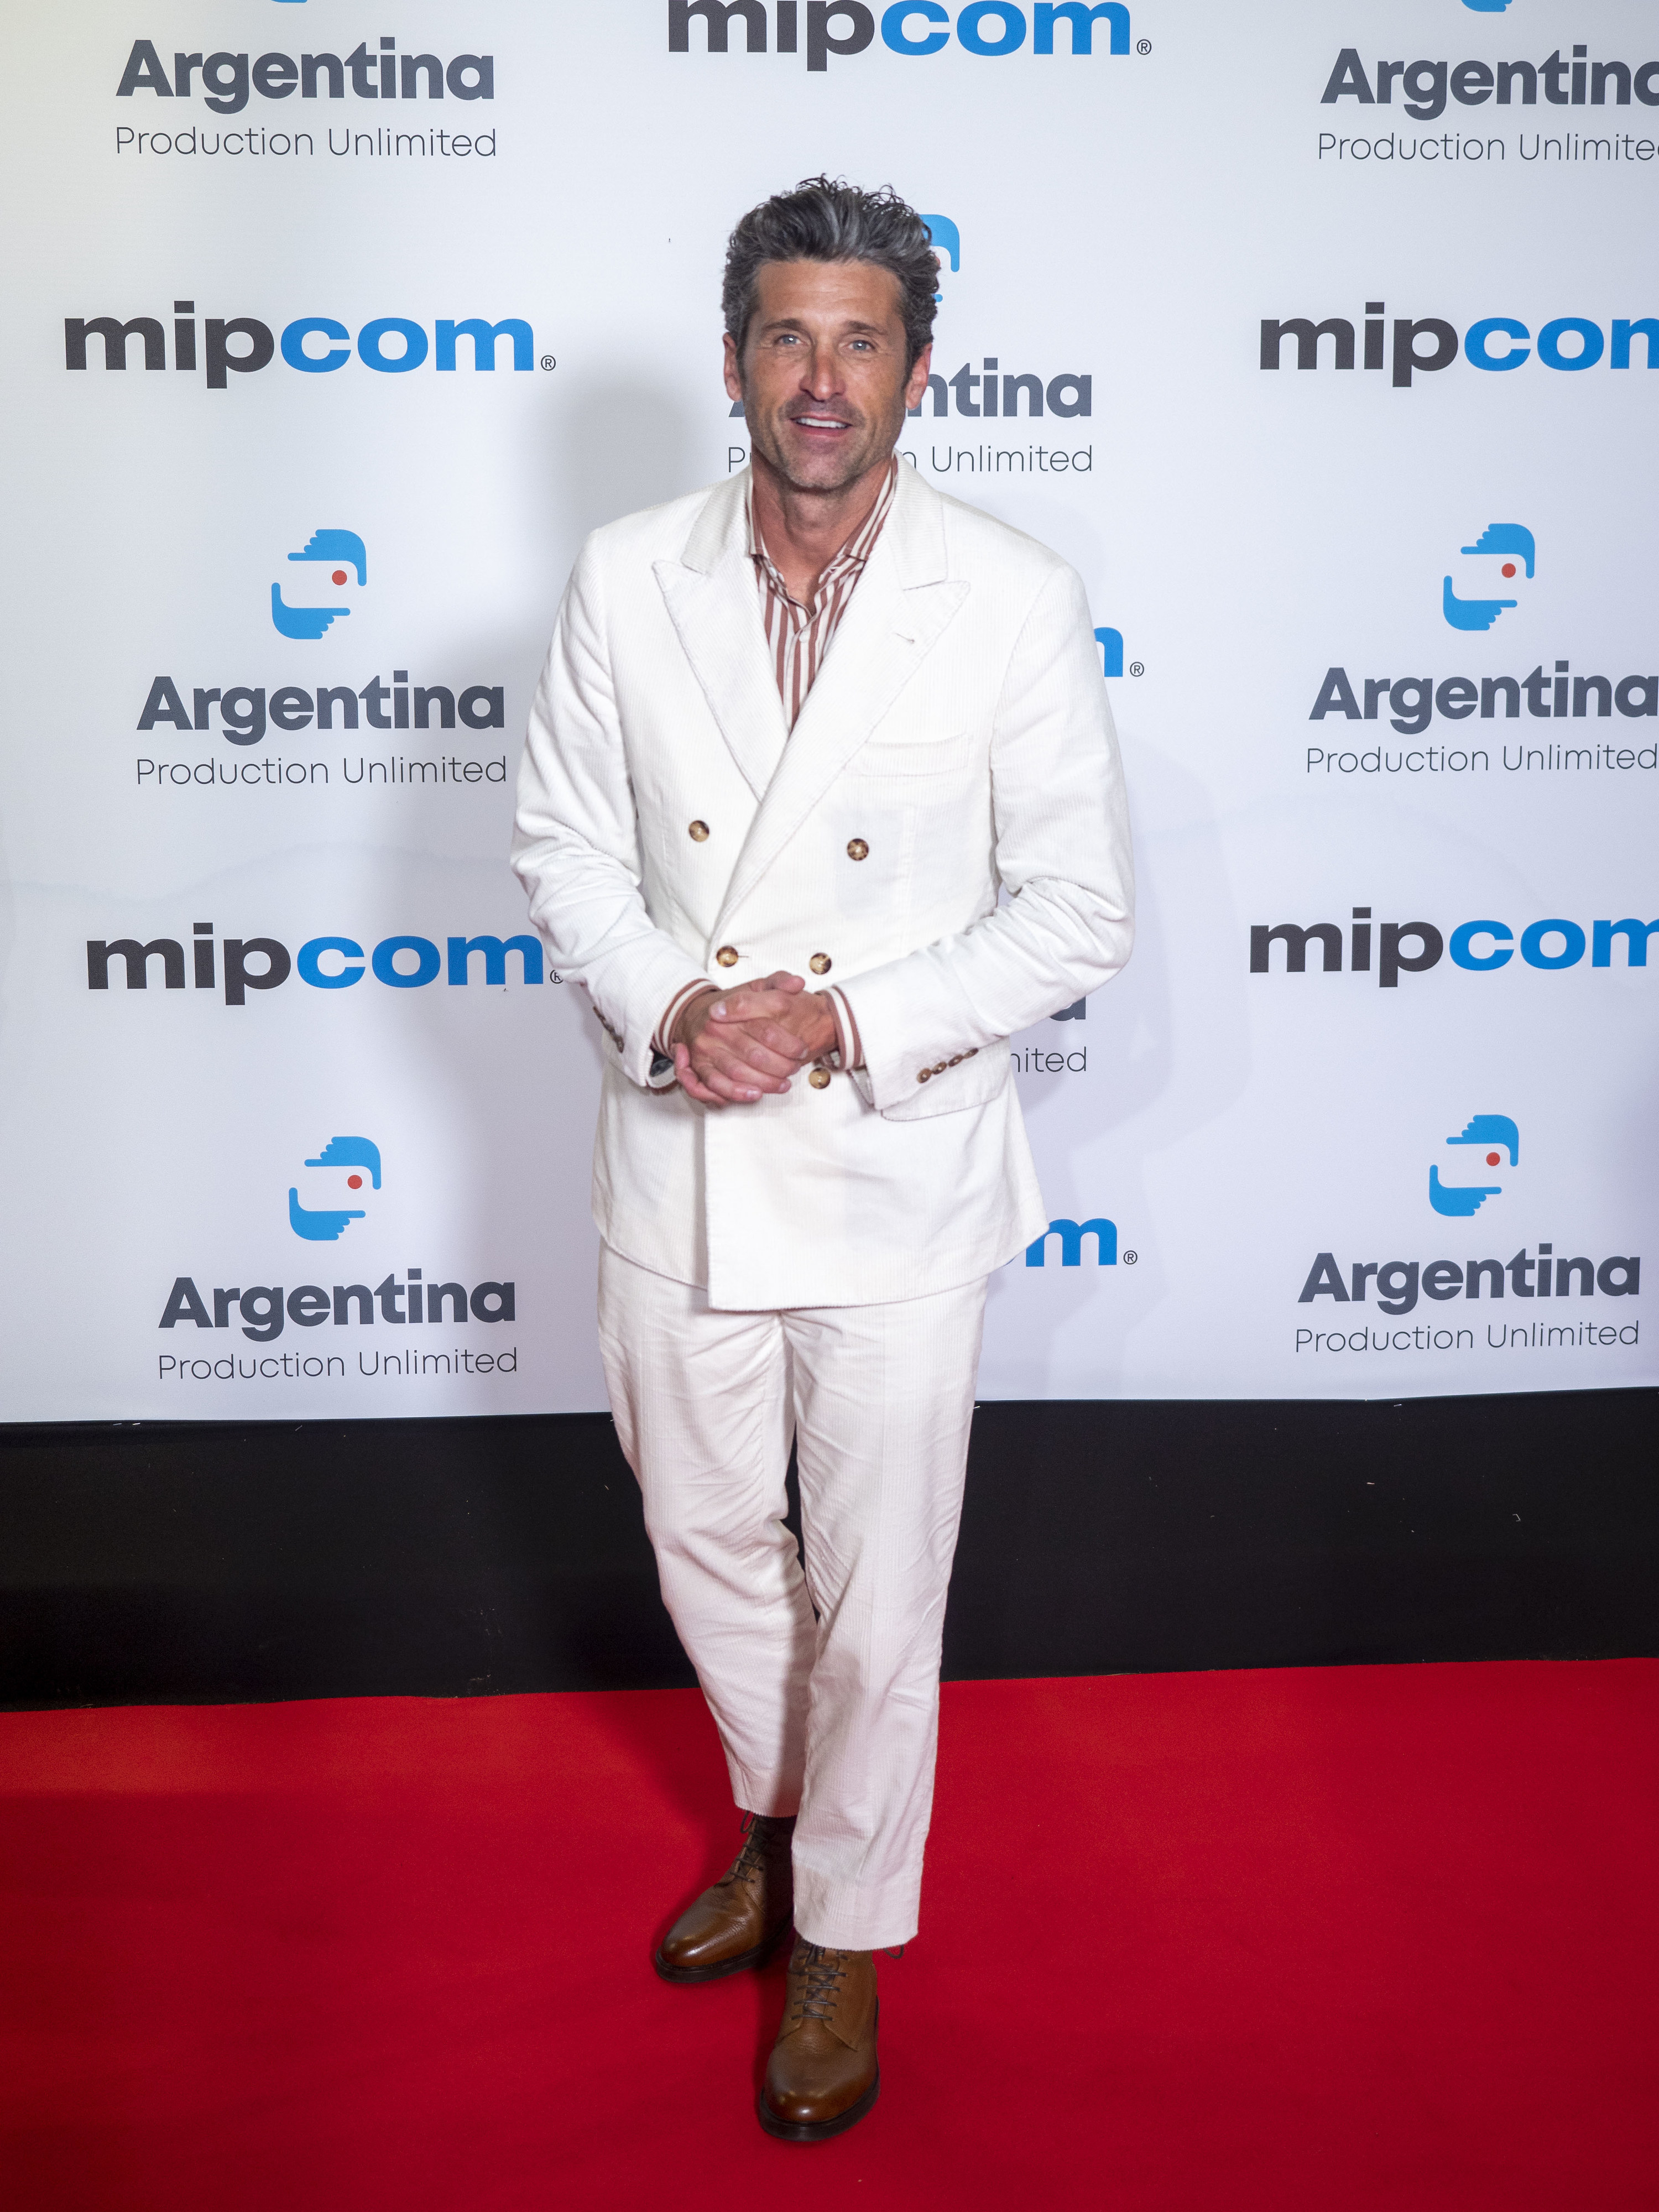 Patrick Dempsey attends the opening ceremony of MIPCOM 2019 in Cannes, France